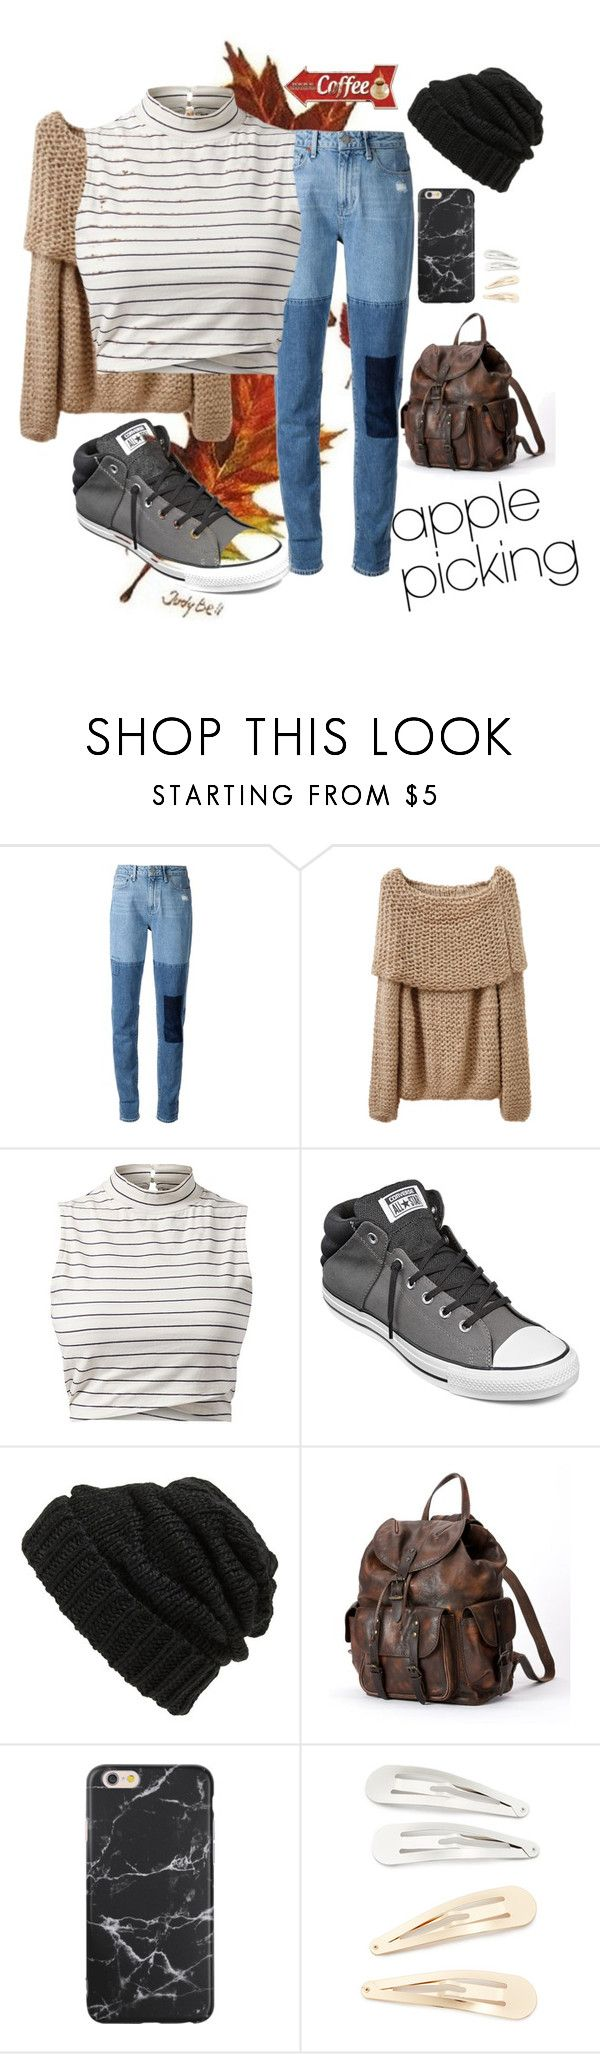 """""""🍎"""" by akeiryn ❤ liked on Polyvore featuring Paige Denim, Converse, Leith, Frye, Kitsch and applepicking"""